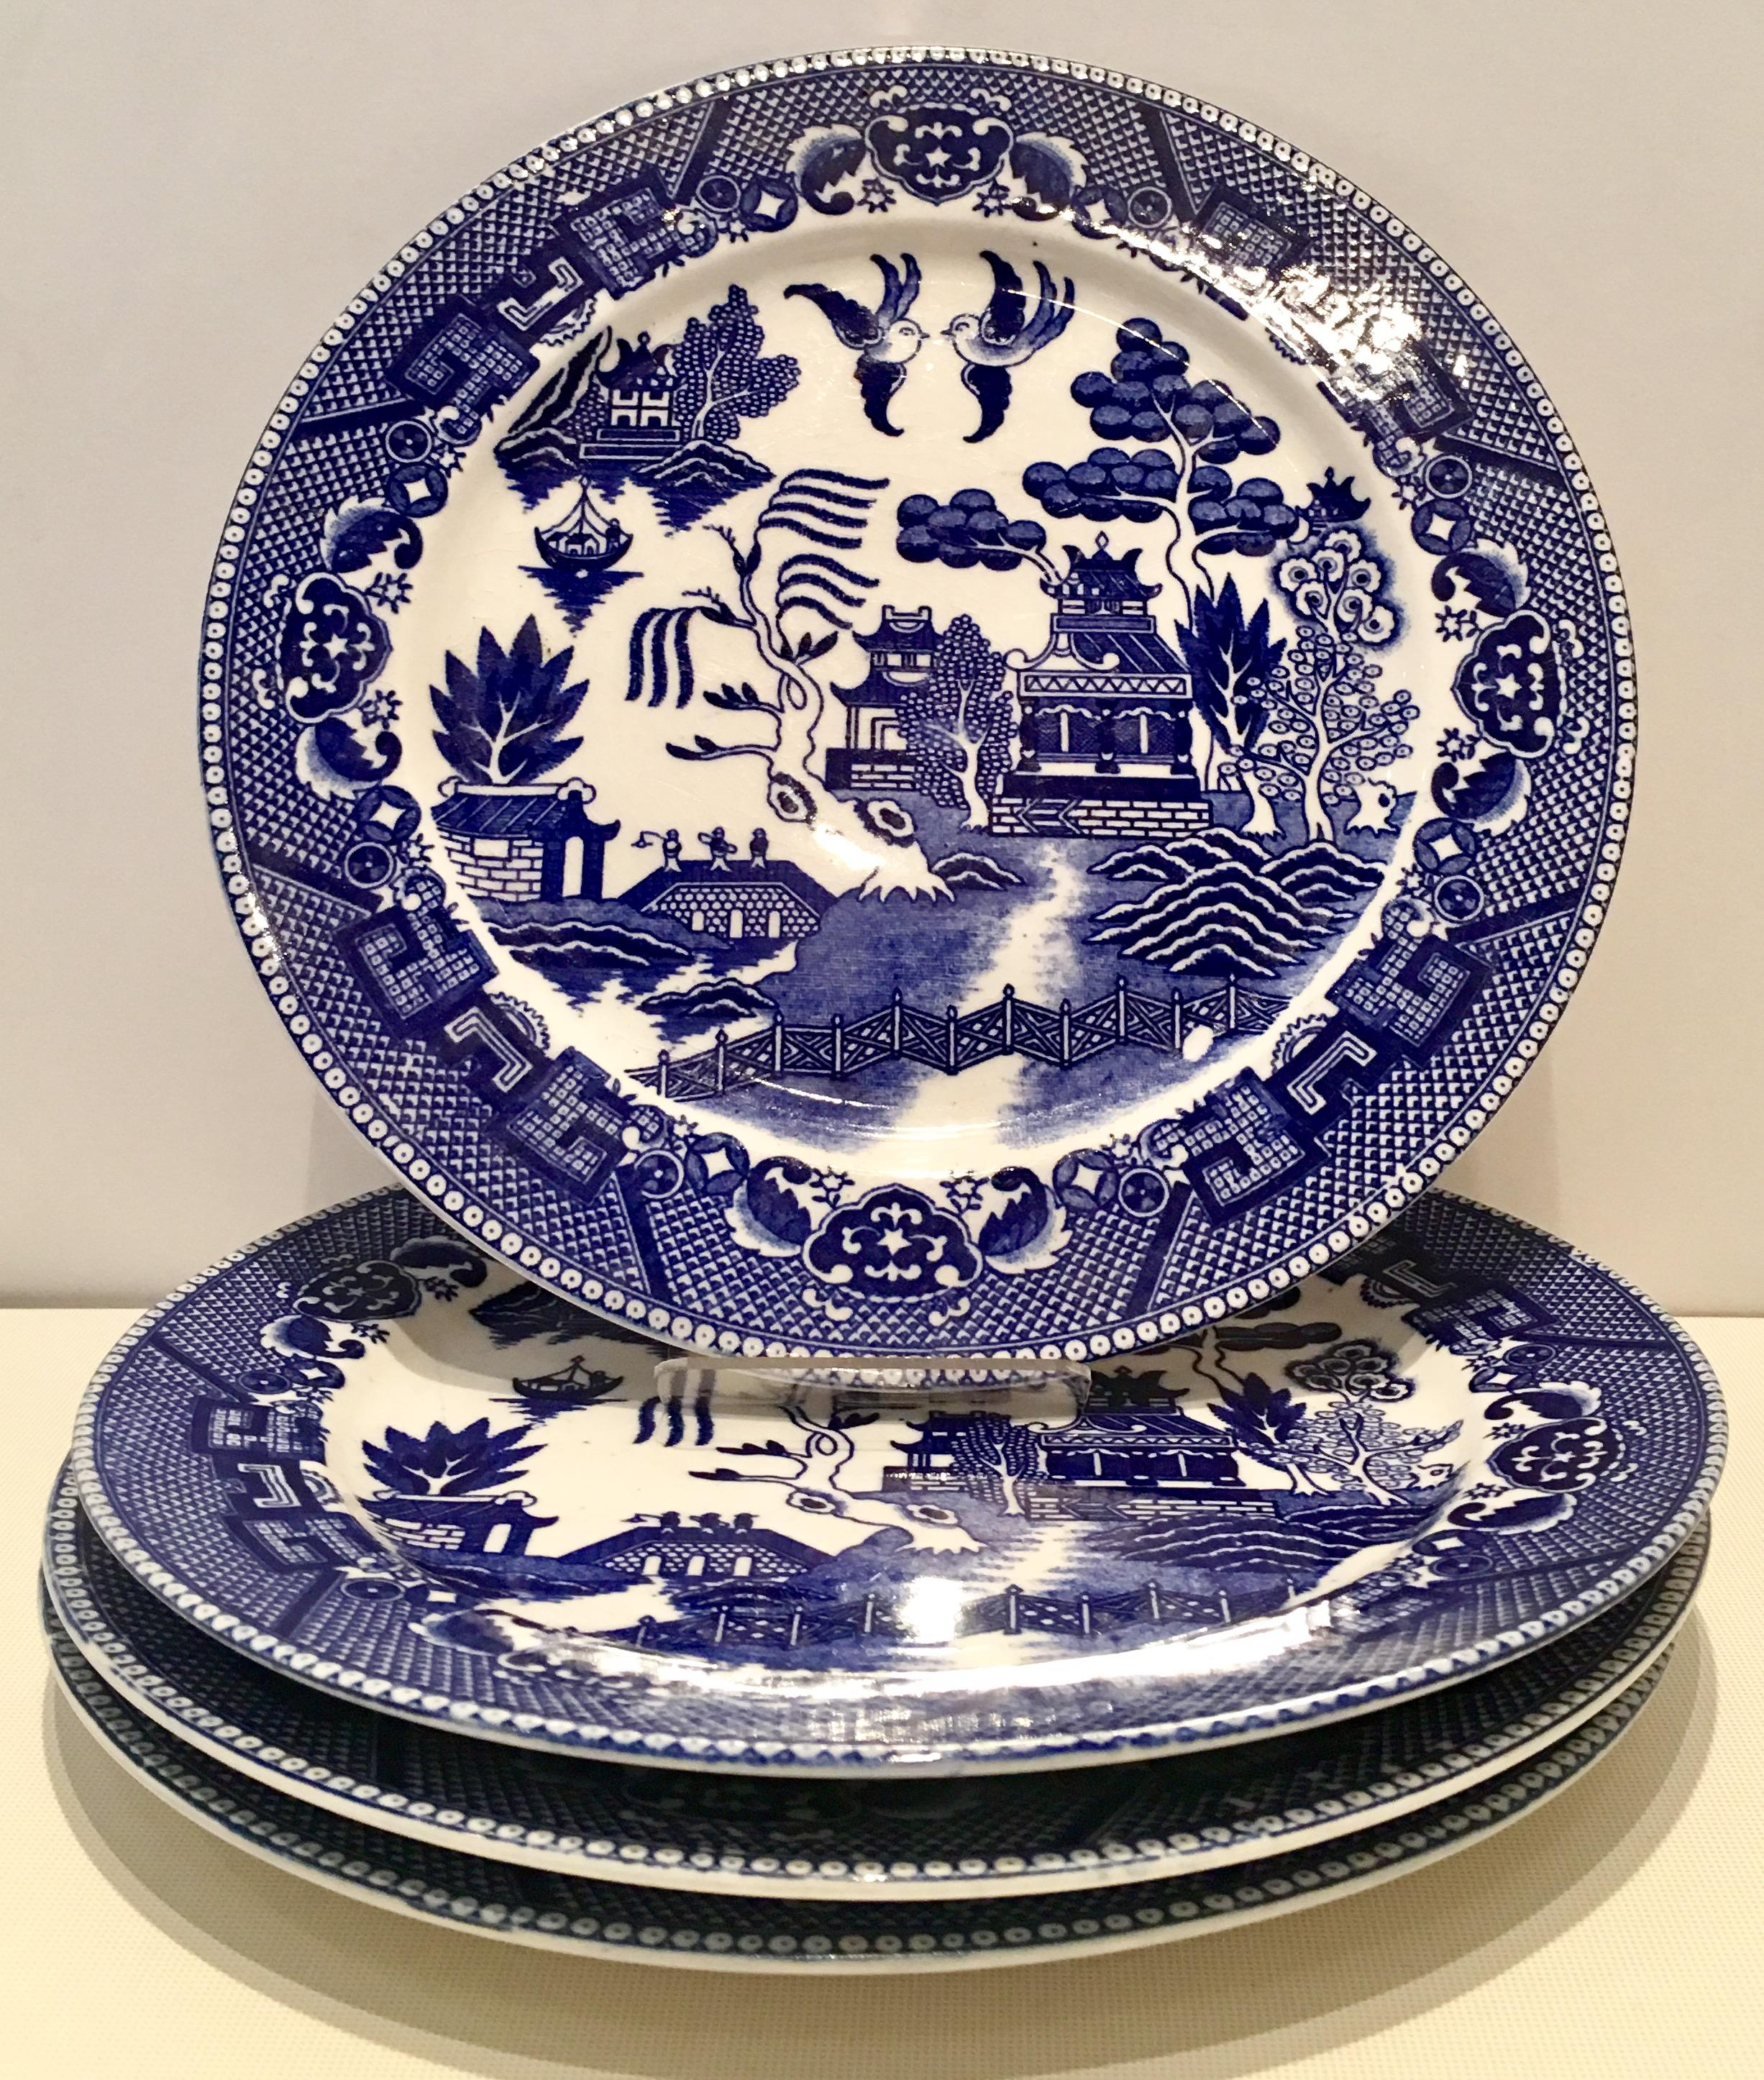 Japanese Blue Willow Dinnerware - Set of 15 - Image 3 of 7  sc 1 st  Chairish : blue willow dinnerware - pezcame.com